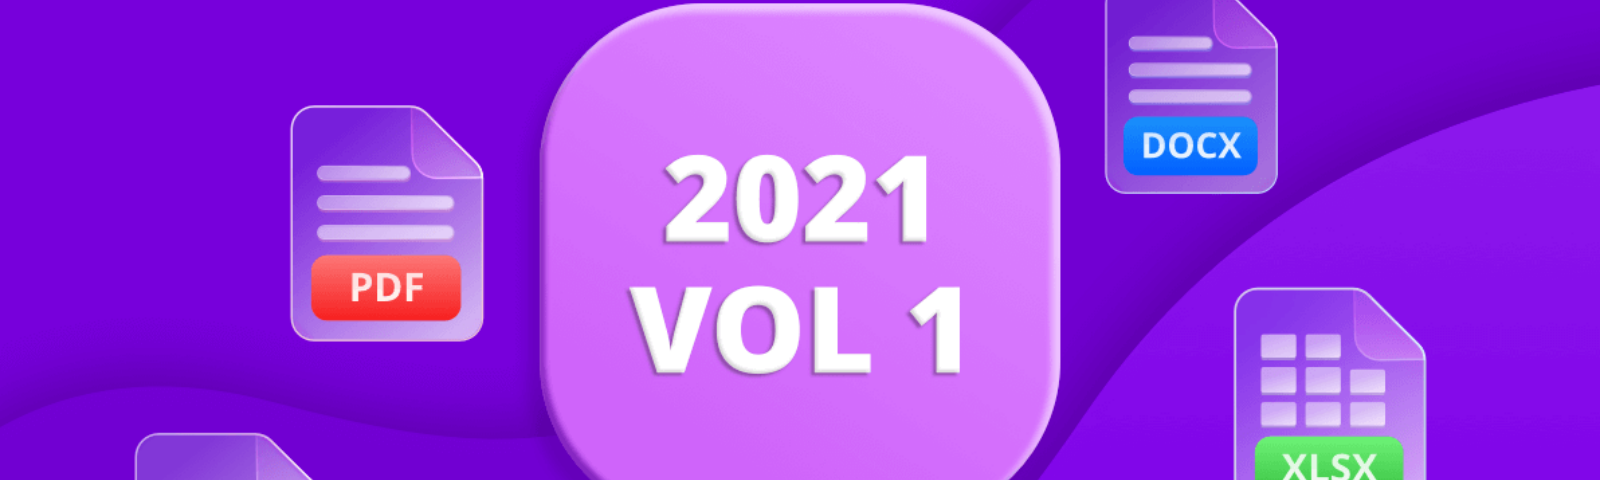 What's New in 2021 Volume 1: File-Format Libraries